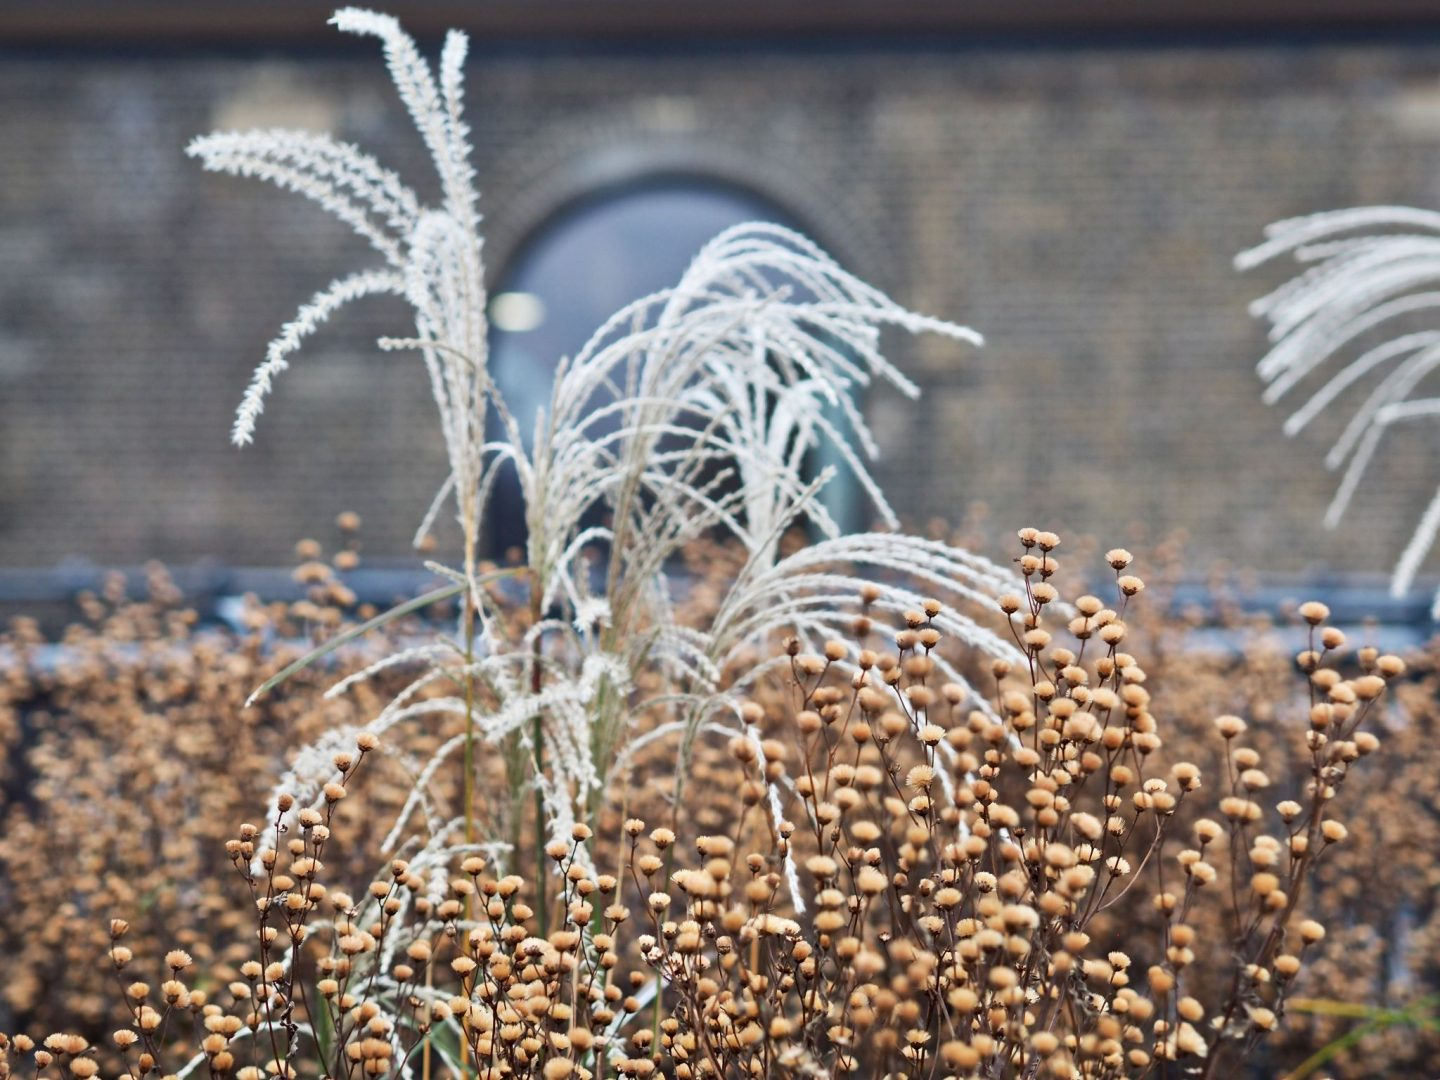 Coal Drops Yard, High line, grasses, Mary Middleton for Hello Peagreen